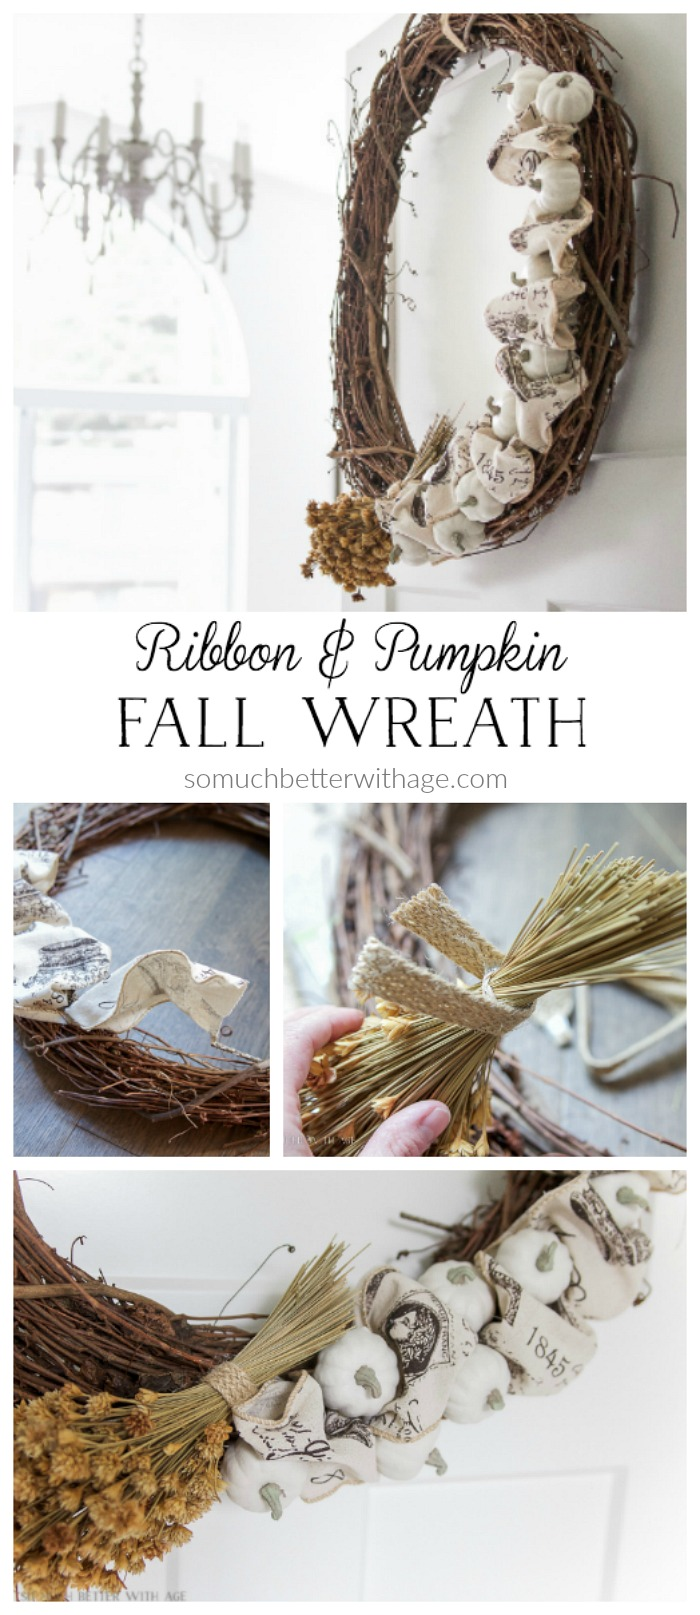 Ribbon and pumpkin fall wreath poster.